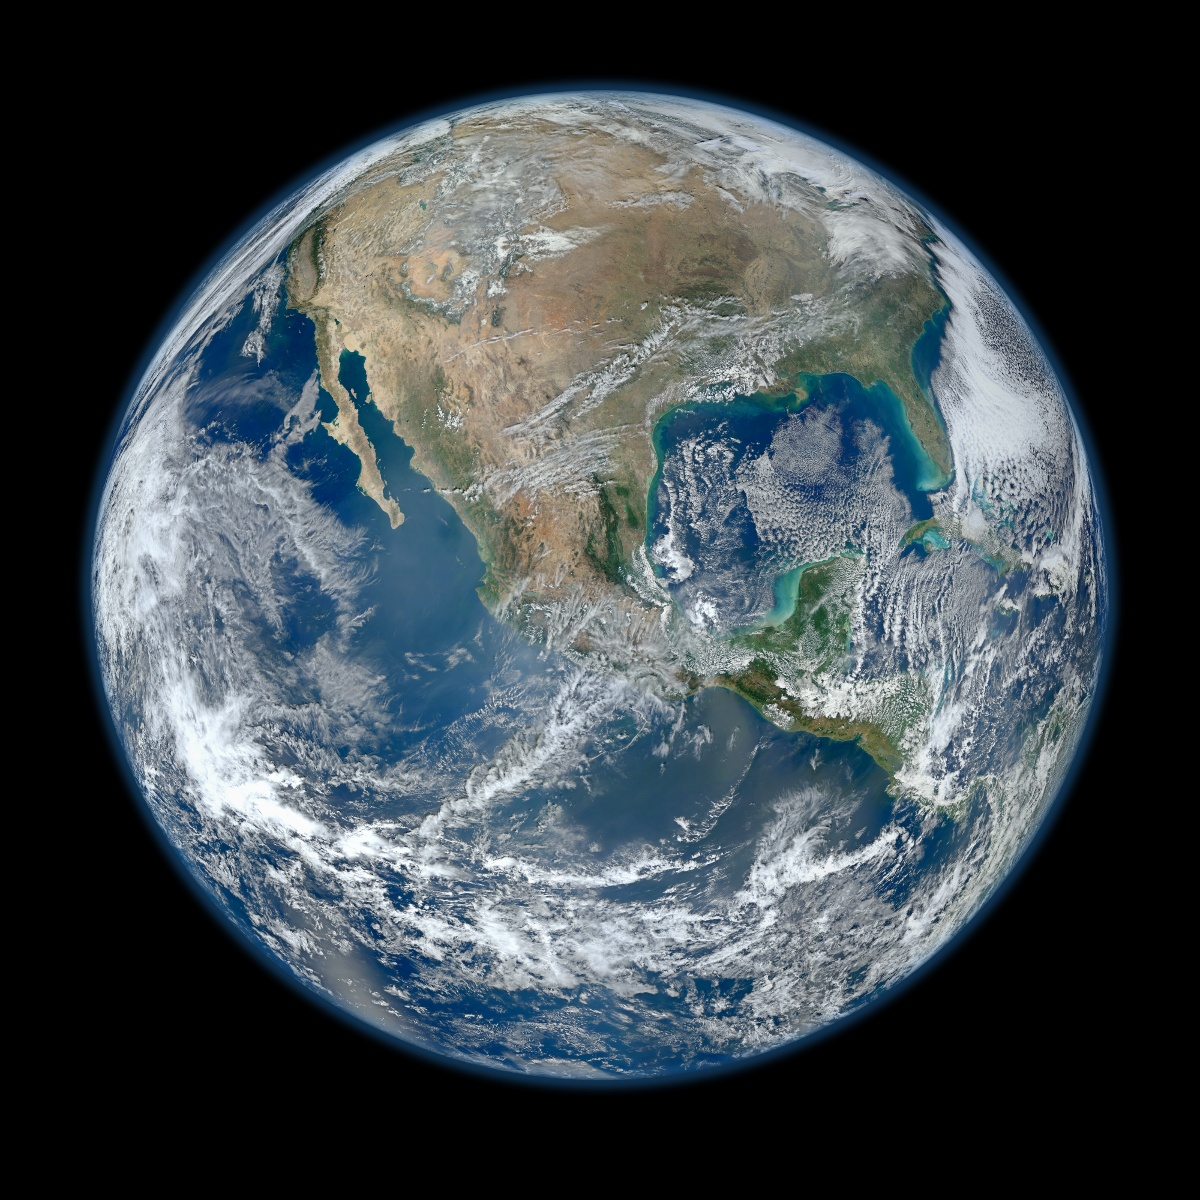 https://i2.wp.com/www.nasa.gov/images/content/617883main_VIIRS_4Jan2012.small.jpg